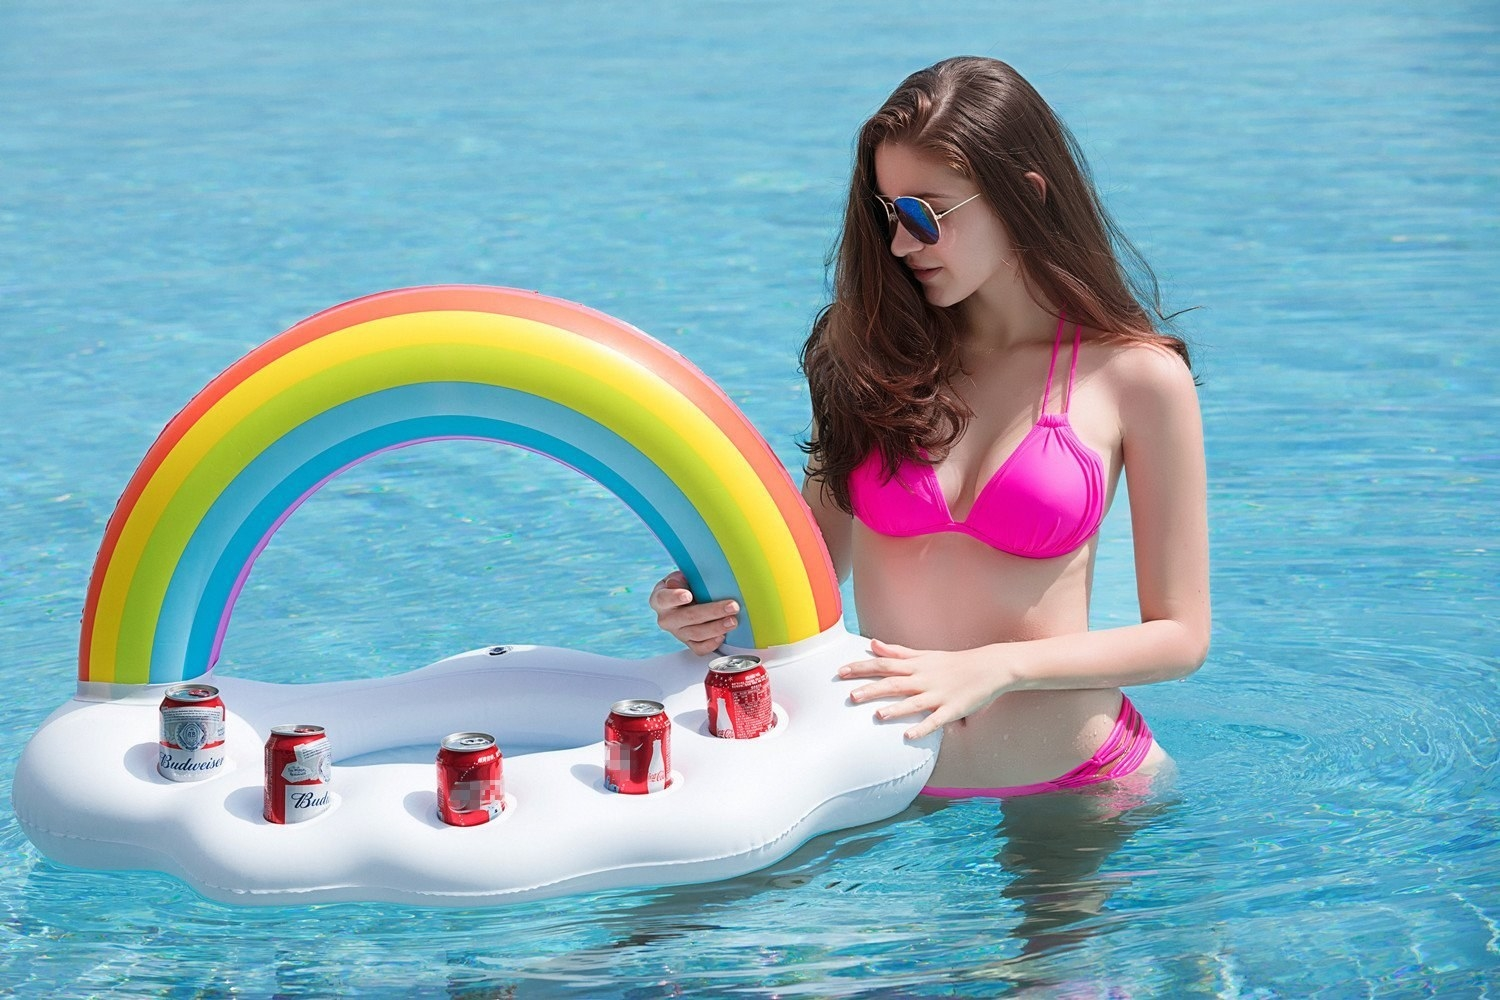 "In addition to the five cup holders, there is a larger middle section for holding ice, snacks, sunscreen, etc.Promising review: ""Great drink holder for the pool. Very stable and holds cups, cans, and snacks. Plus, it is just fun to see the floating rainbow and cloud."" —CaligrrlGet it from Amazon for $14.99."